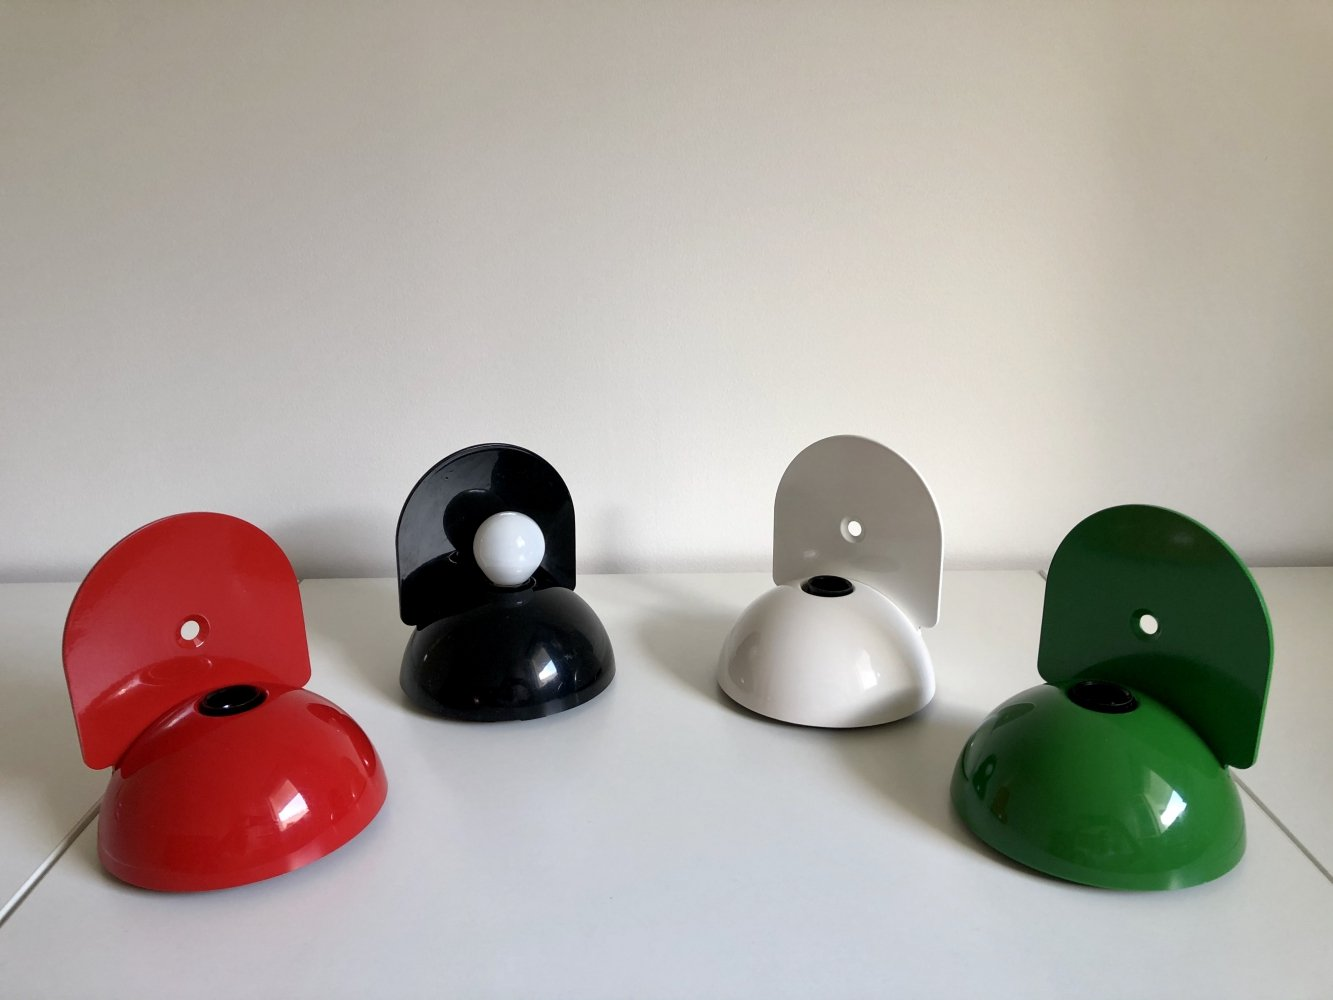 9 x Buco Wall Lamp by Claudio Dini for Artemide, 1974